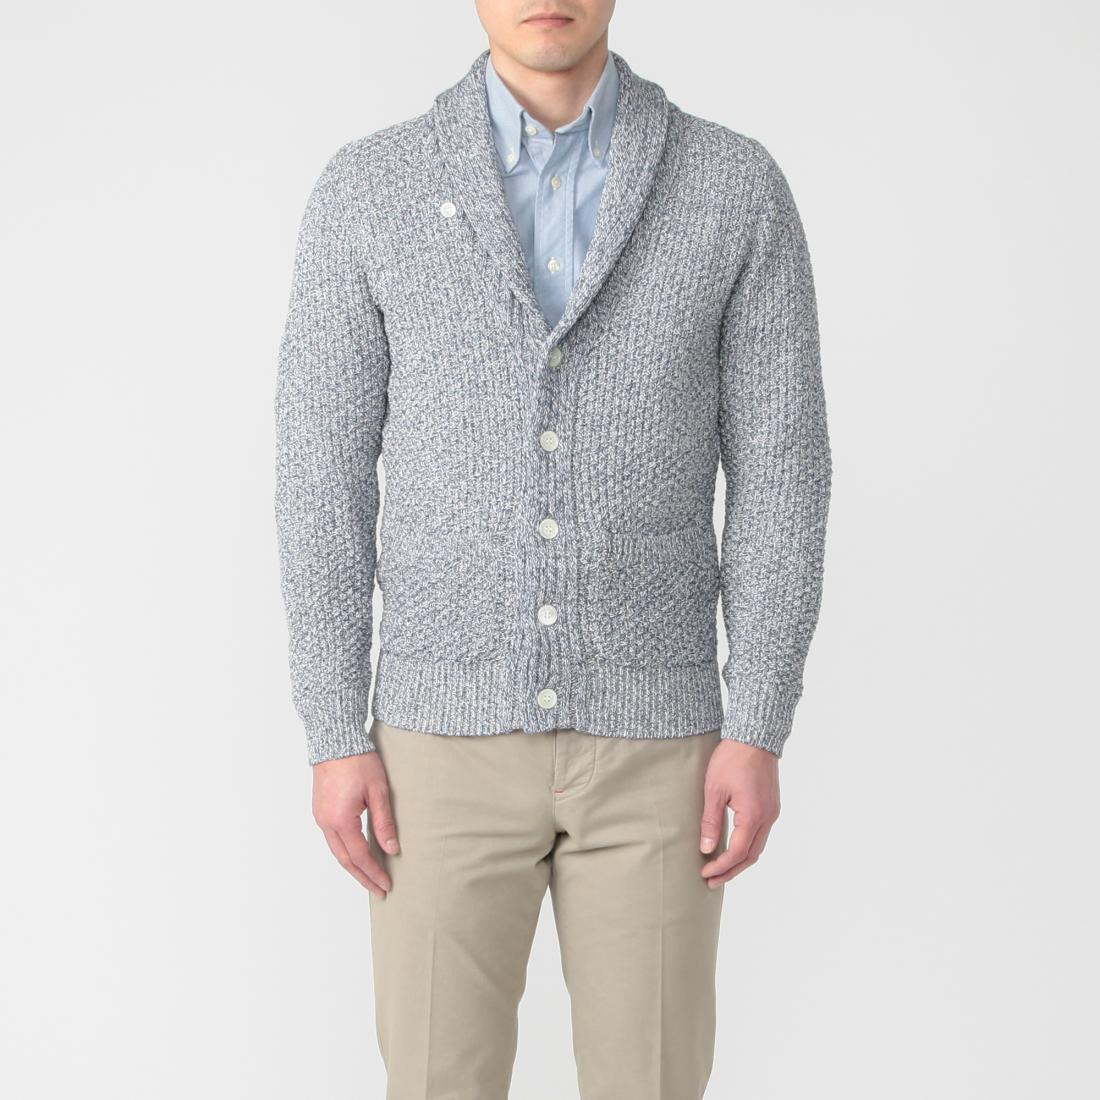 Cotton Shawl Collar Cardigan 1217046: Navy